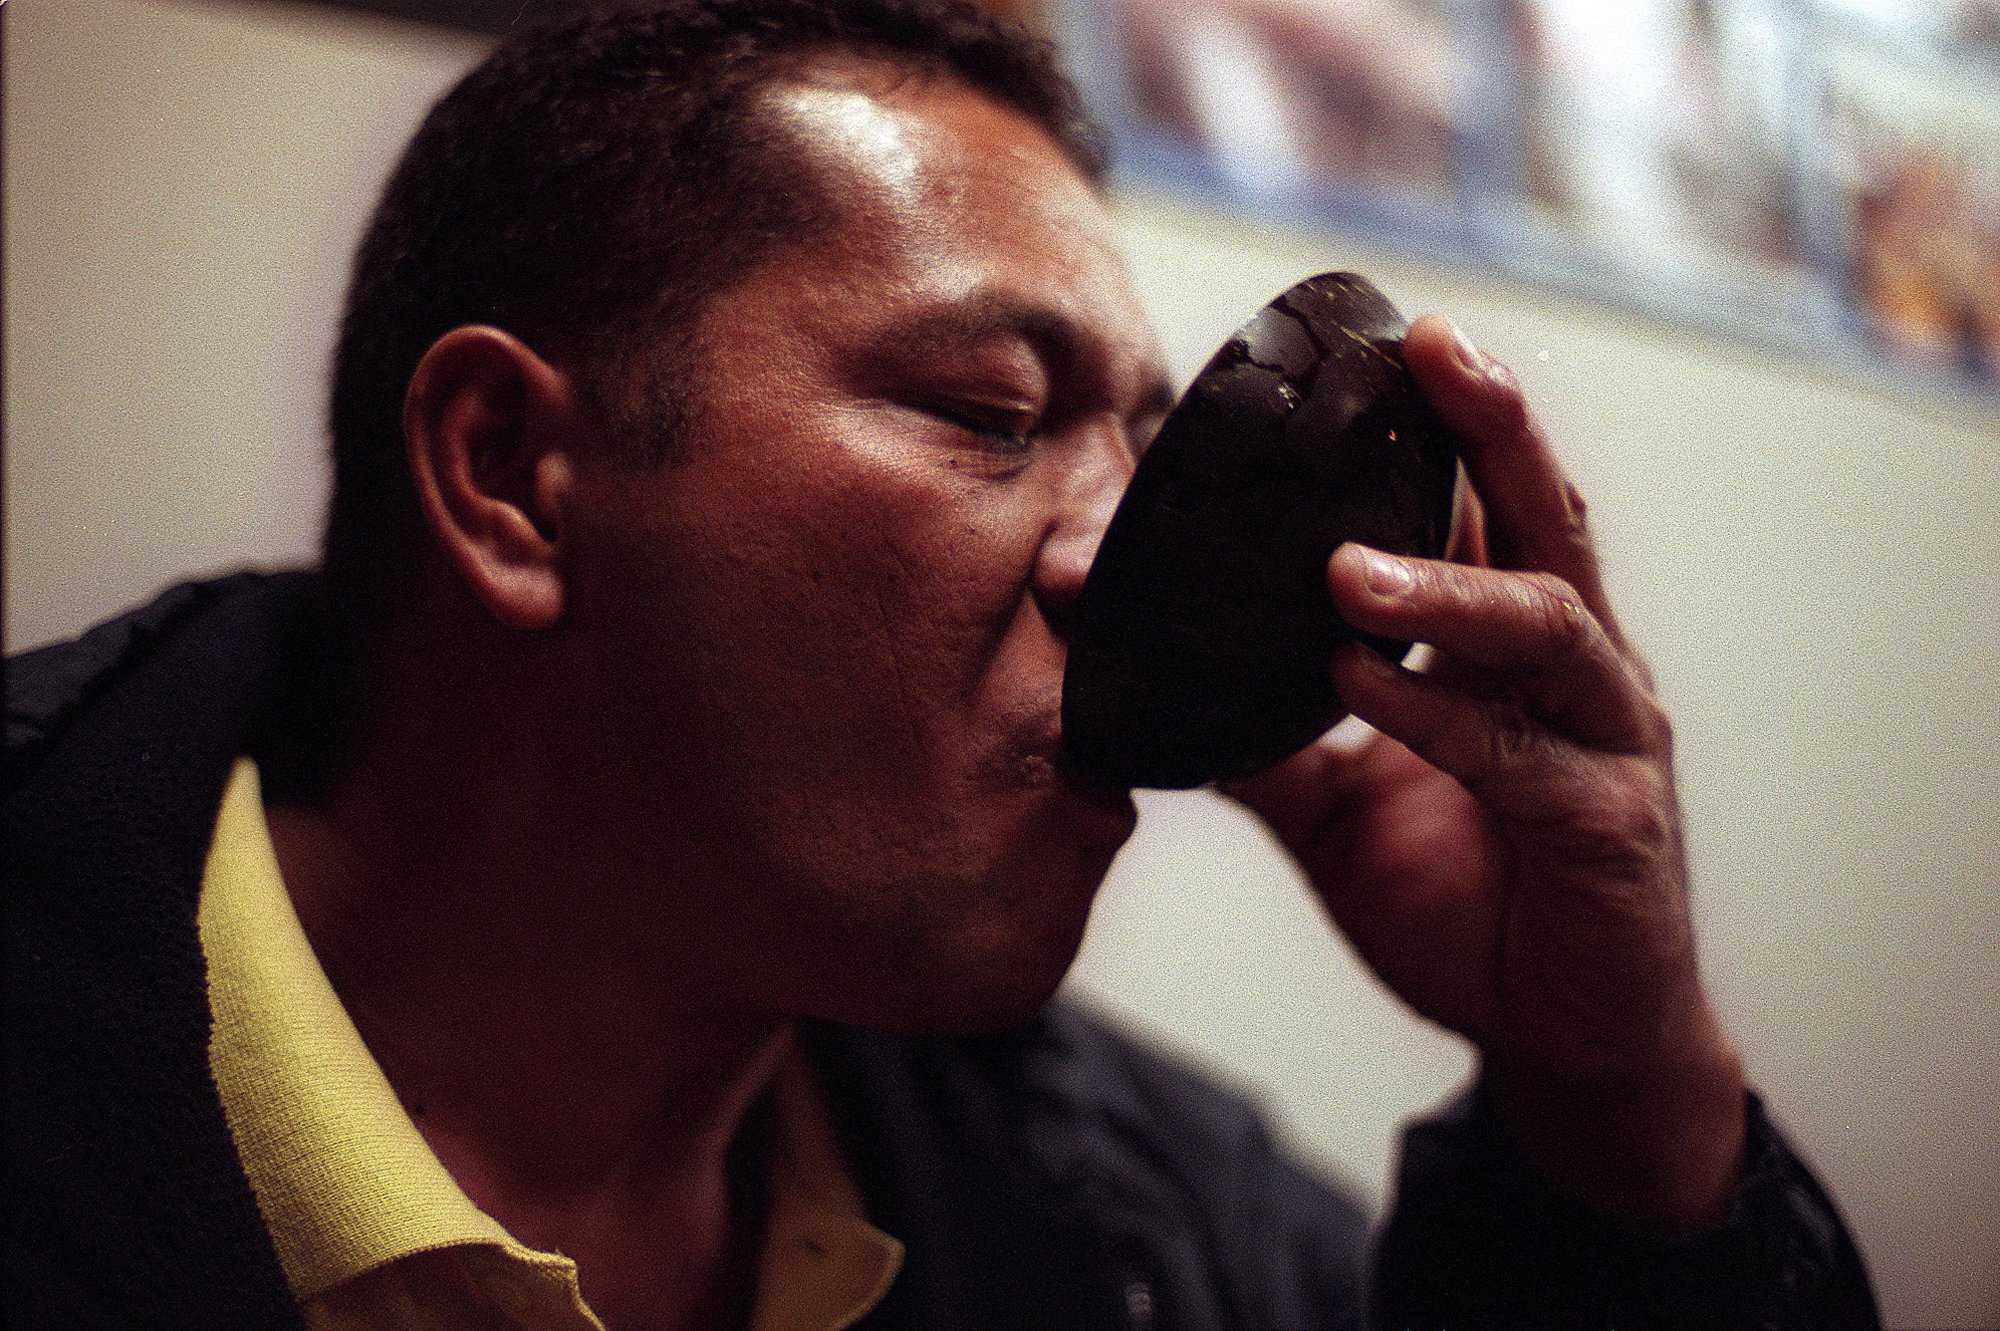 KRT CALIFORNIA STORY SLUGGED: CA-NEWDRUGS KRT PHOTOGRAPH BY TOM VAN DYKE/SAN JOSE MERCURY NEWS (August 7) The Kava root contains a depressant used in drinks in Tongan and Samoan rituals. (SJ) NC KD 2001 (Horiz) (lde)